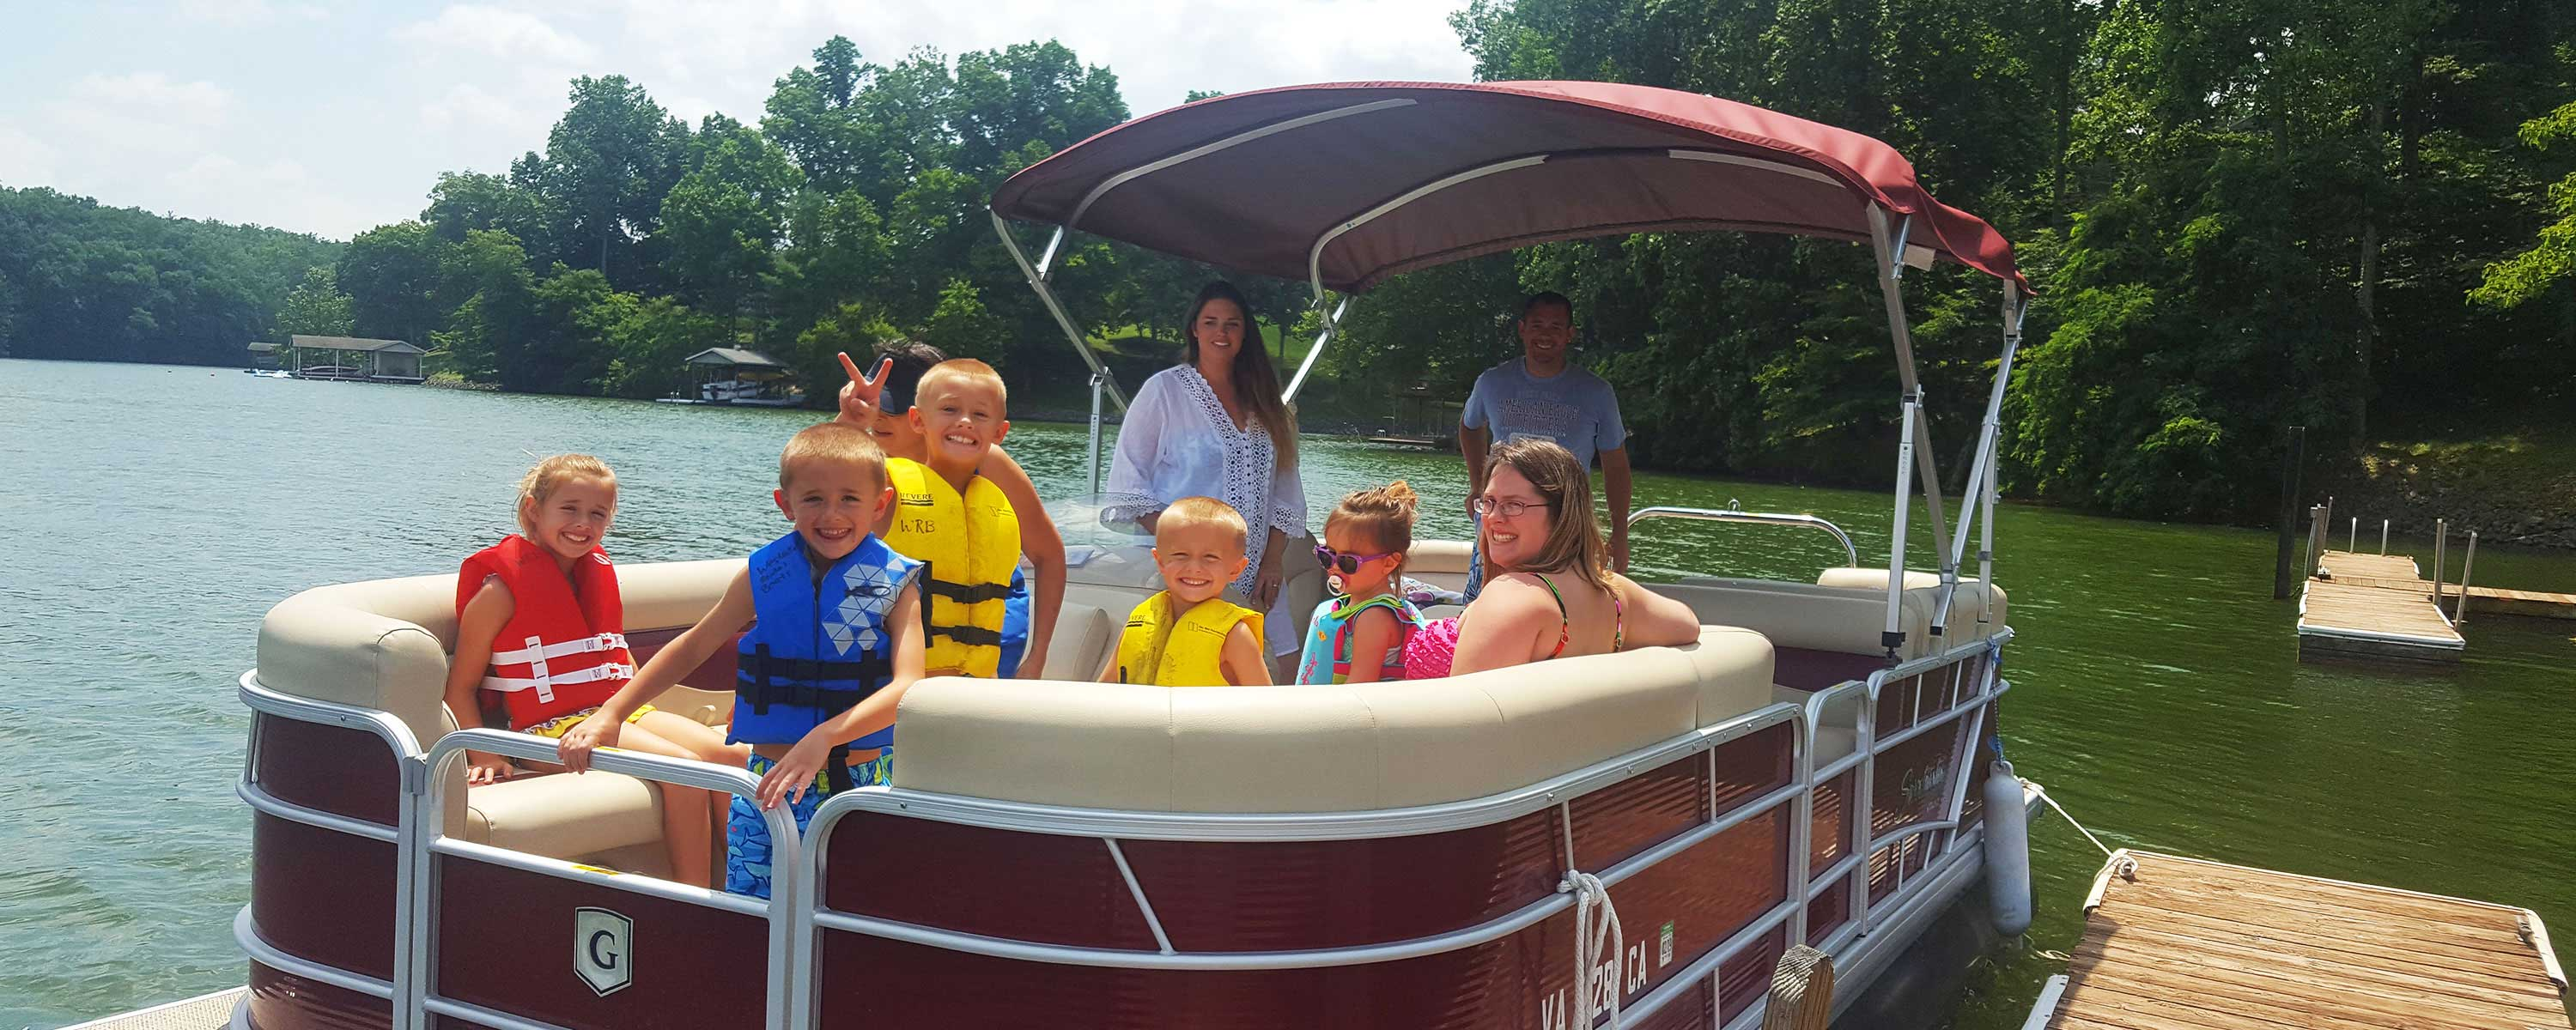 Family of boys, girls, and adults on red pontoon boat